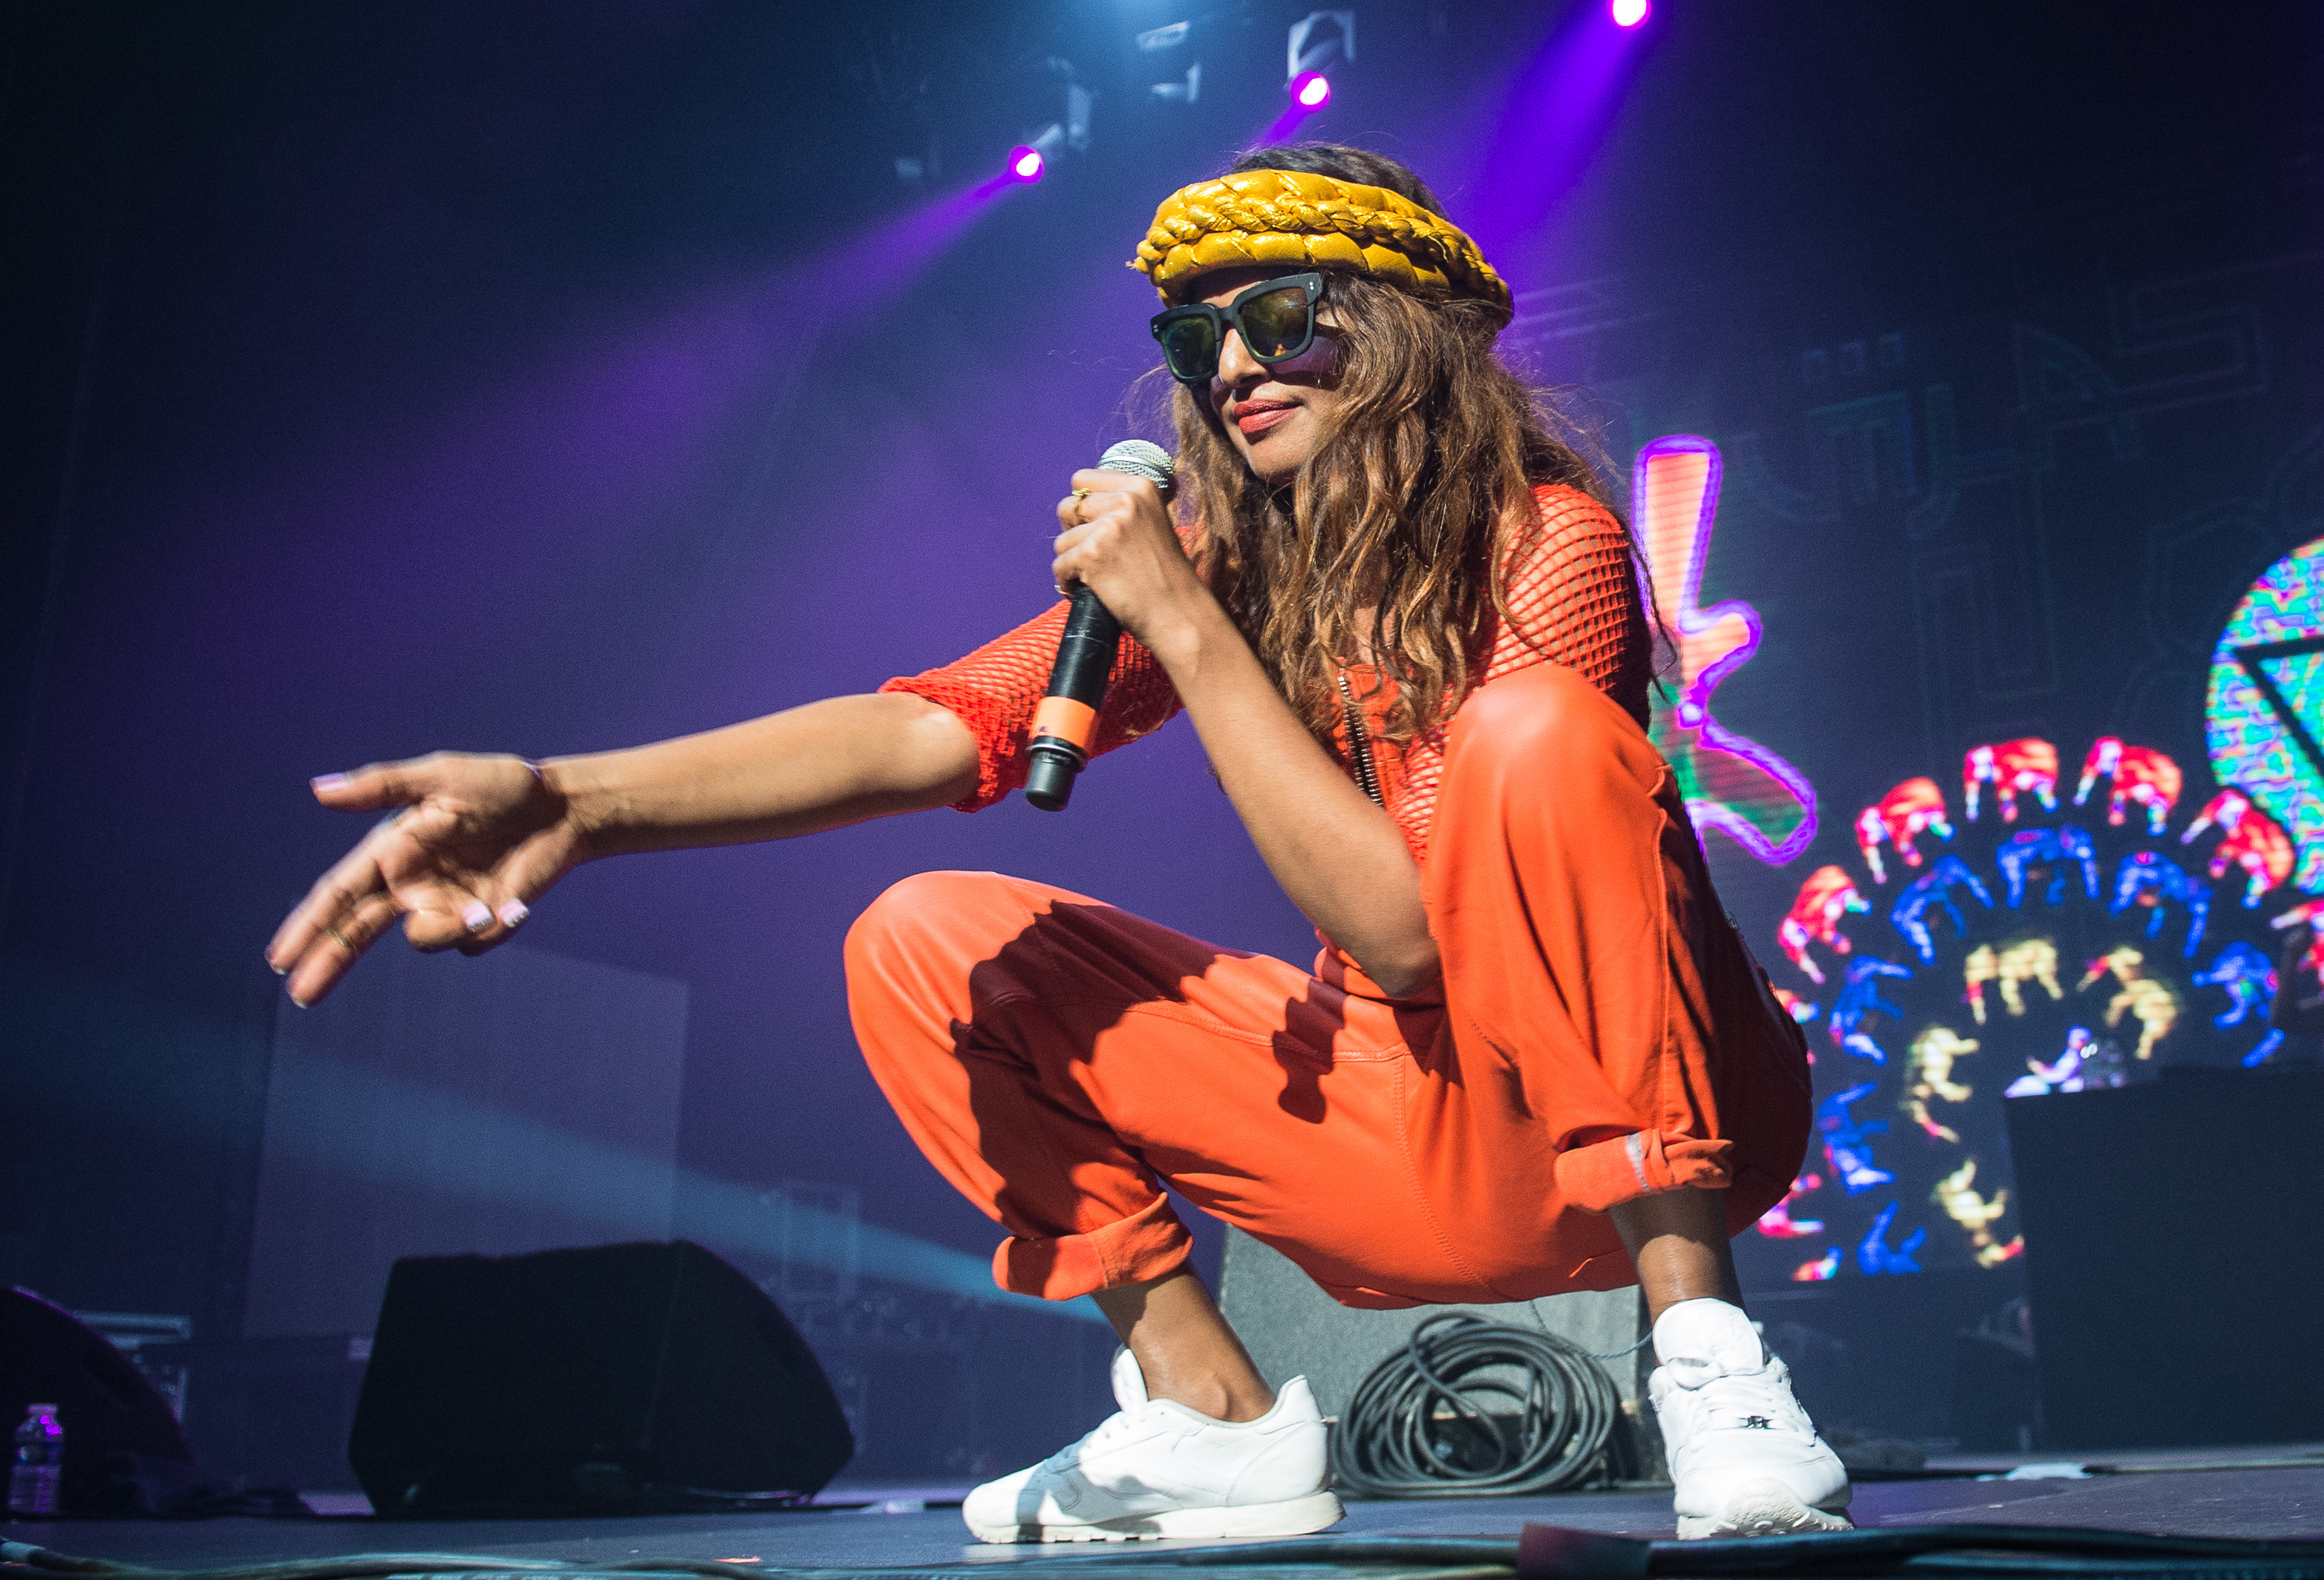 M.I.A. And Nas Performs At Festival Paris HIP HOP 2014 At Zenith